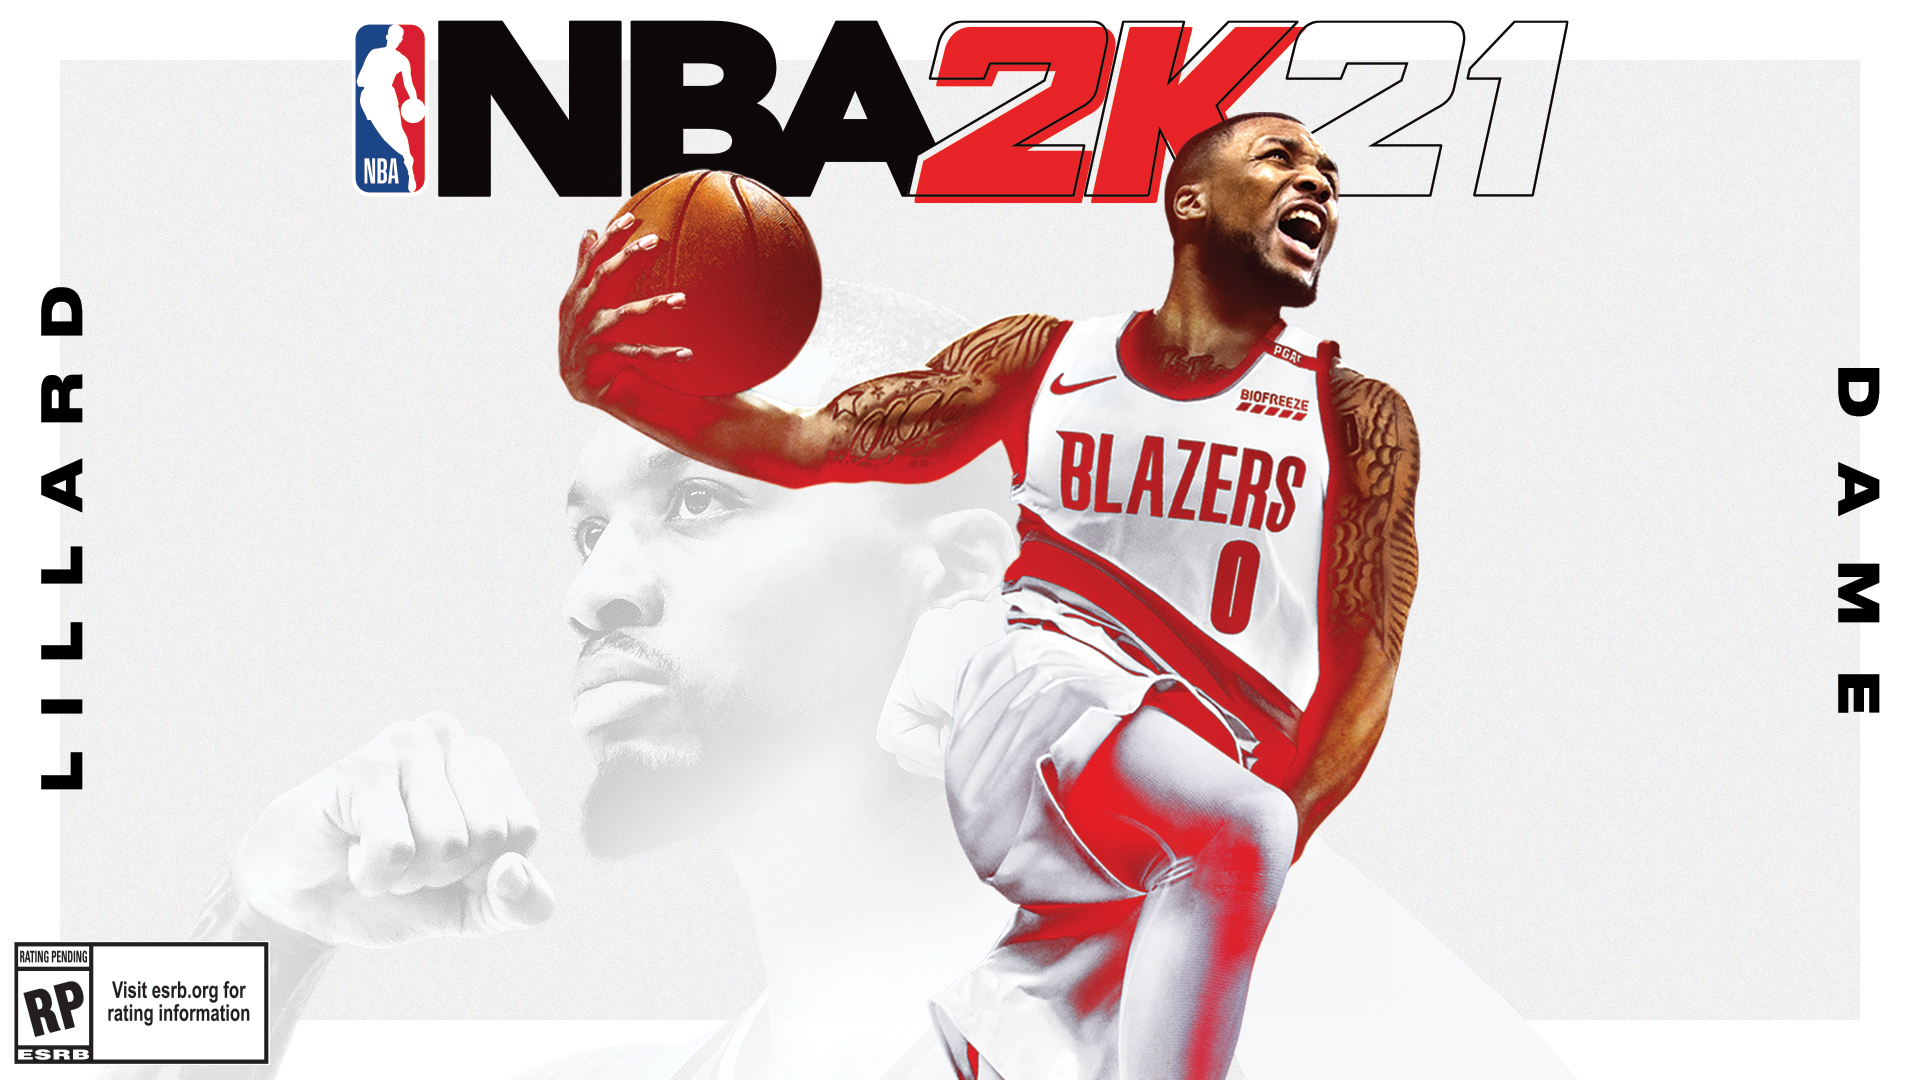 Damian Lillard named first cover athlete for NBA 2K21